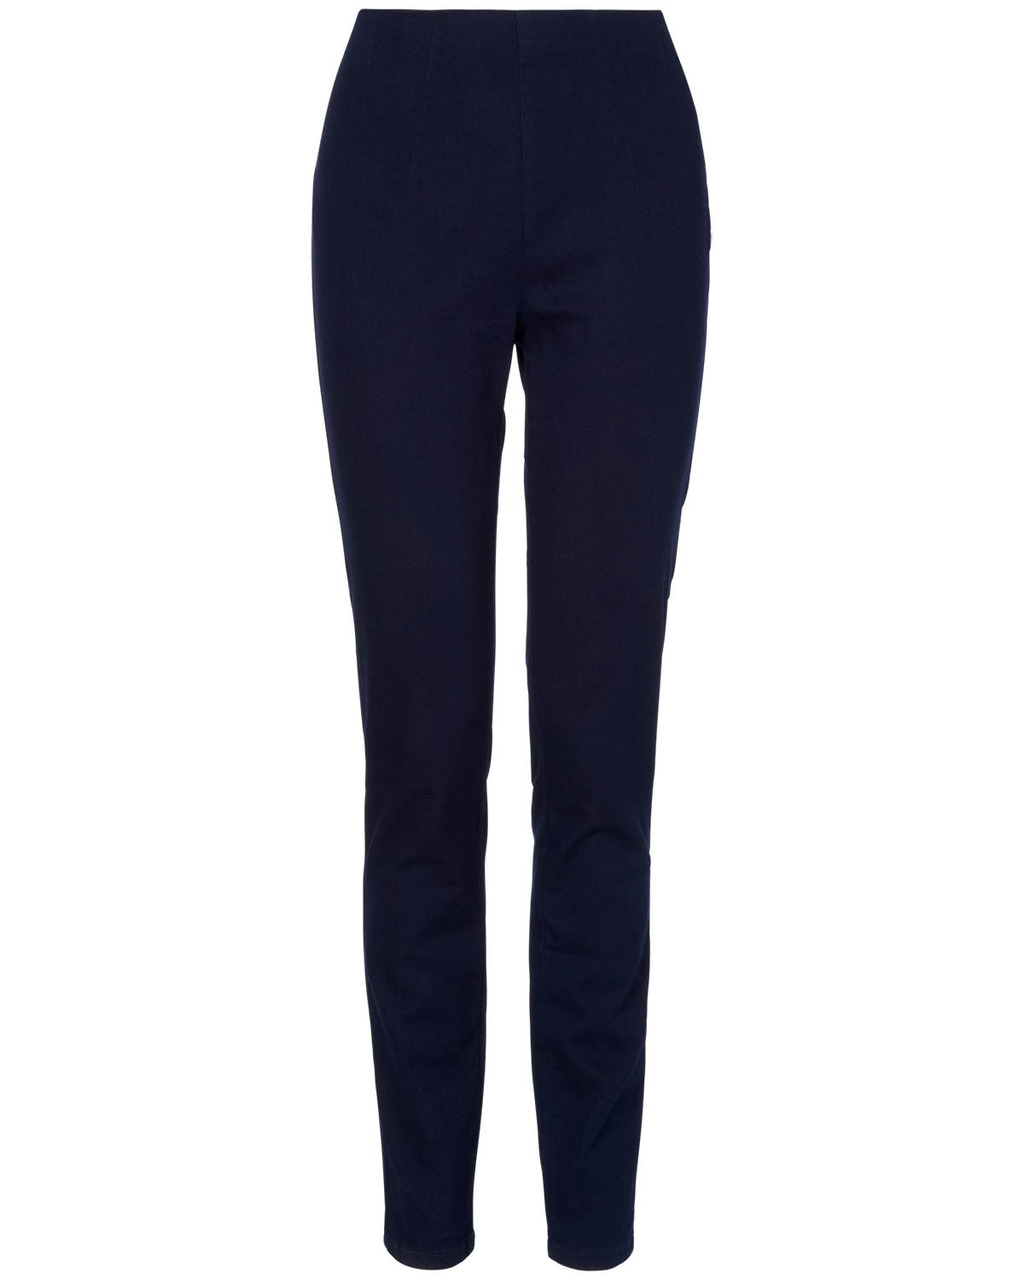 Amina Darted Jegging - length: standard; pattern: plain; style: jeggings; waist: mid/regular rise; predominant colour: navy; occasions: casual, evening, creative work; fibres: cotton - stretch; jeans detail: dark wash; texture group: denim; season: s/s 2014